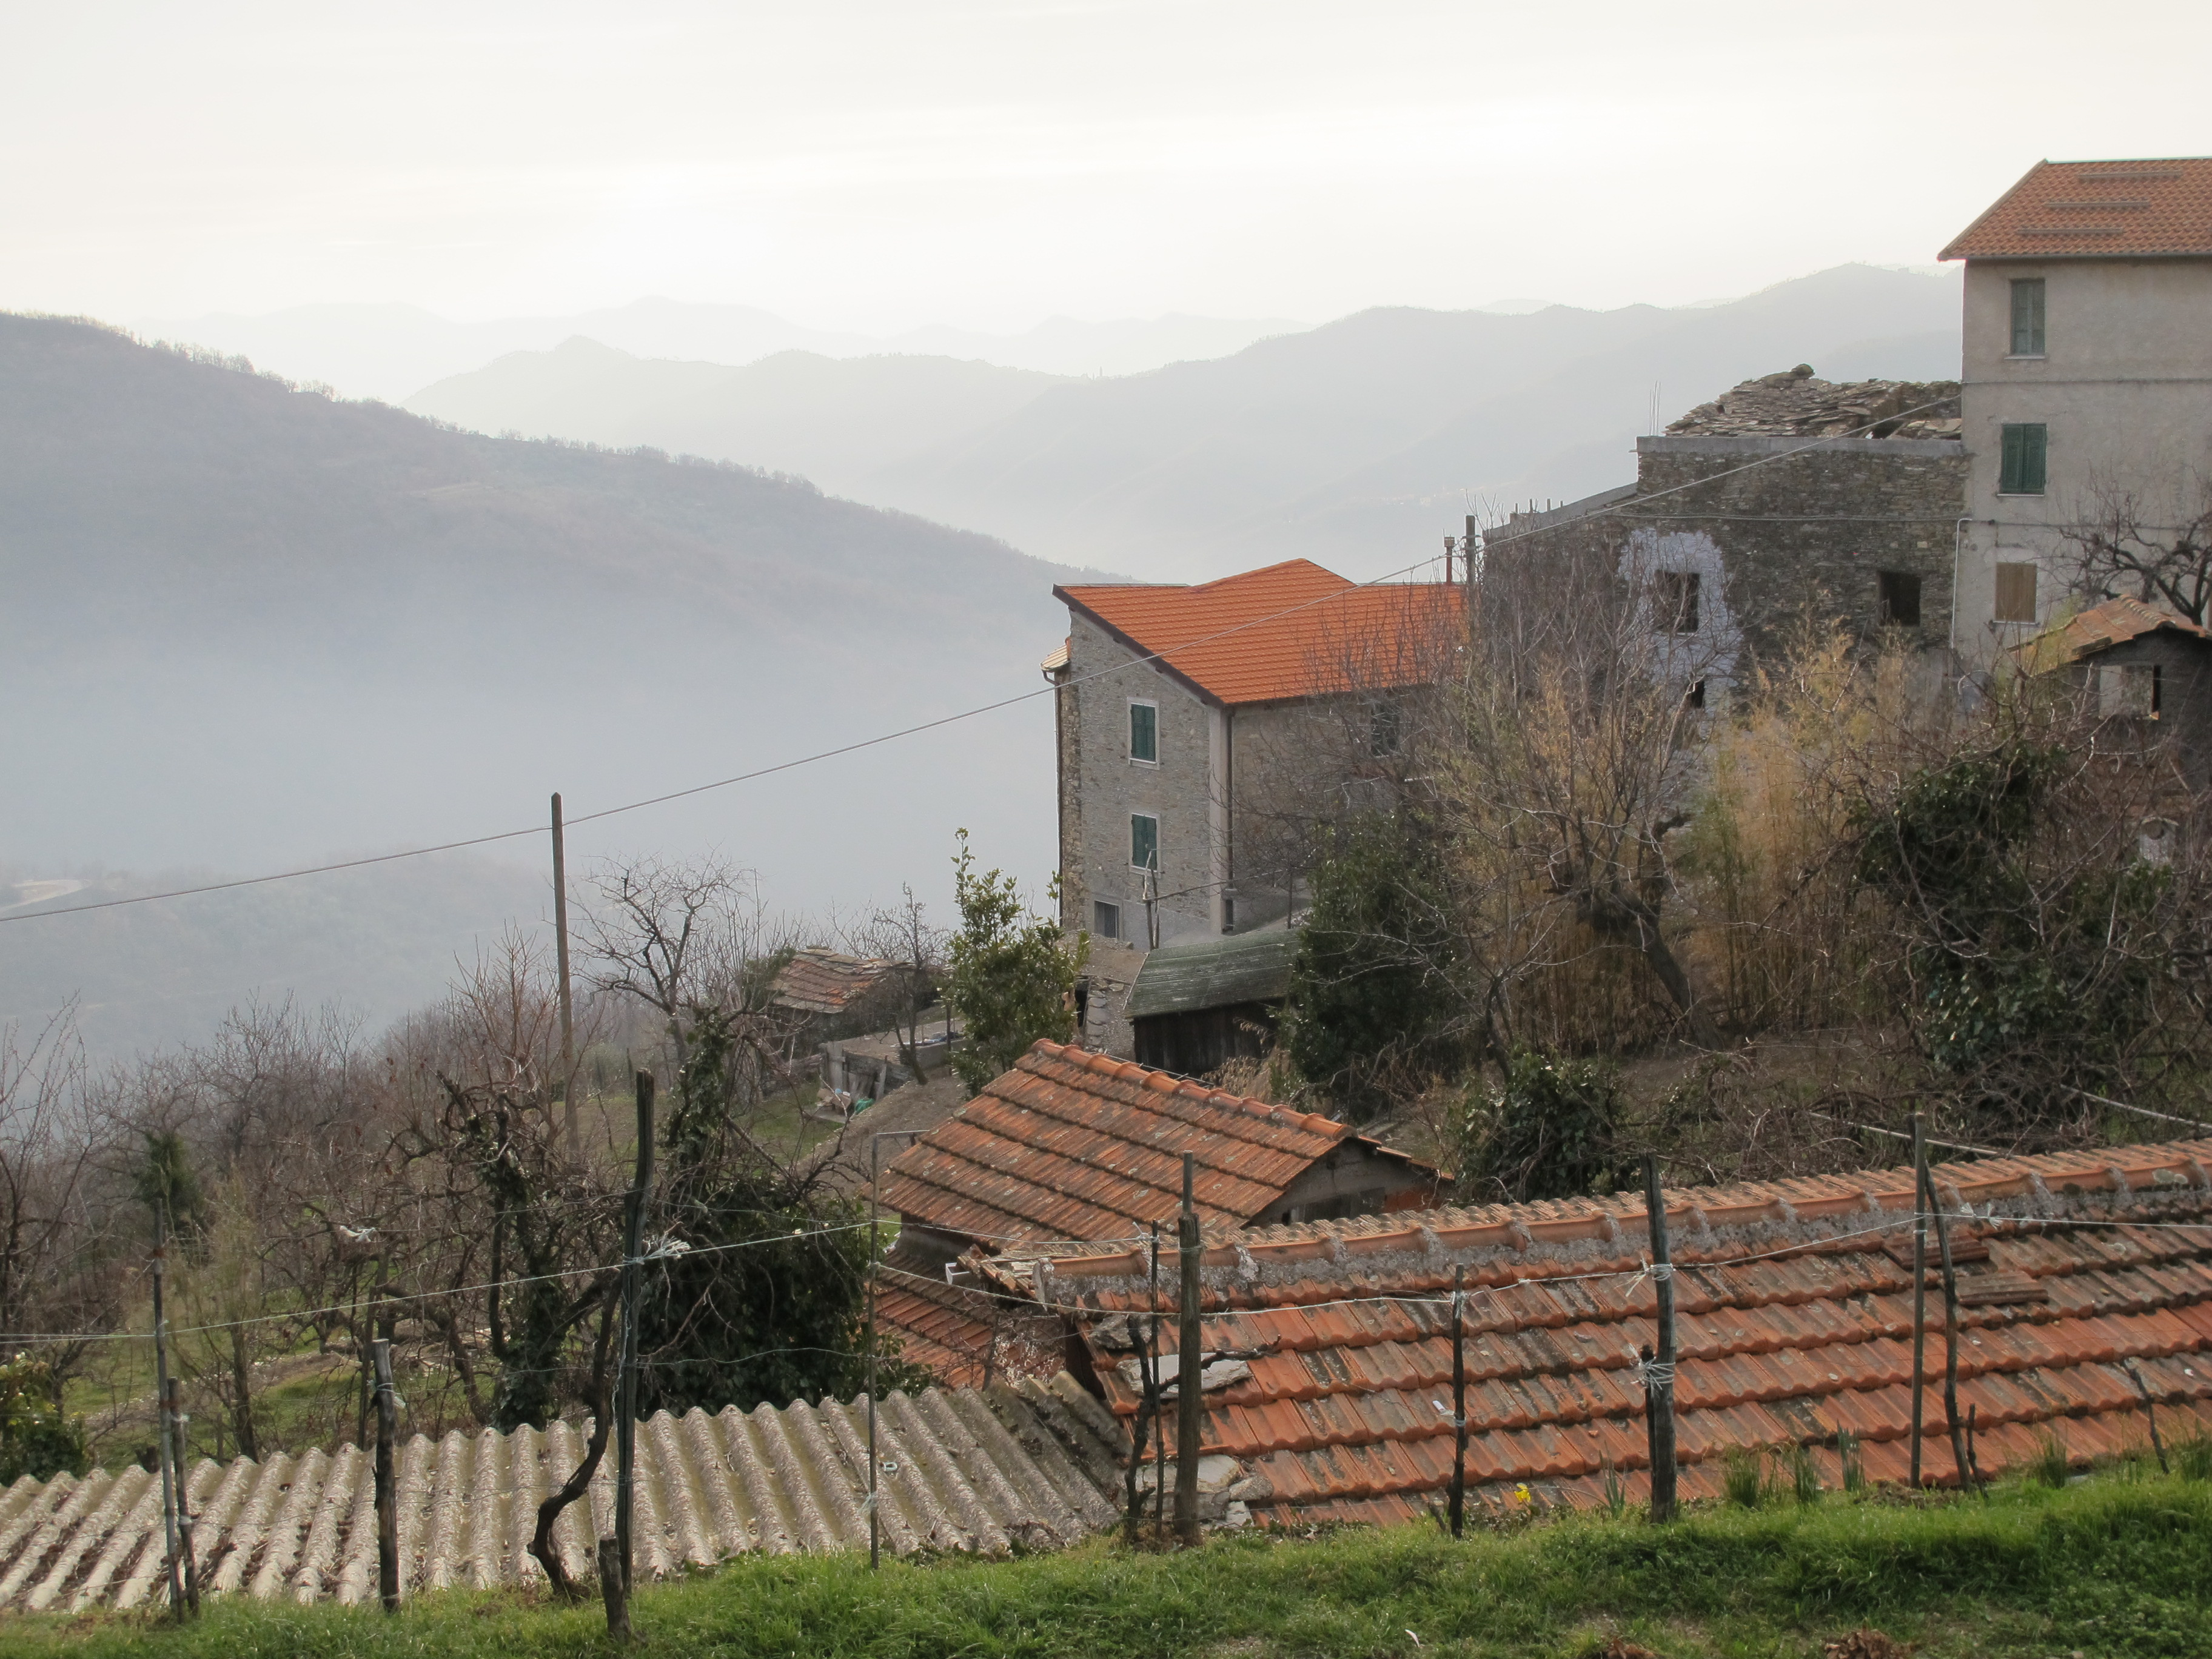 A misty view from Nonna and Anna's village.